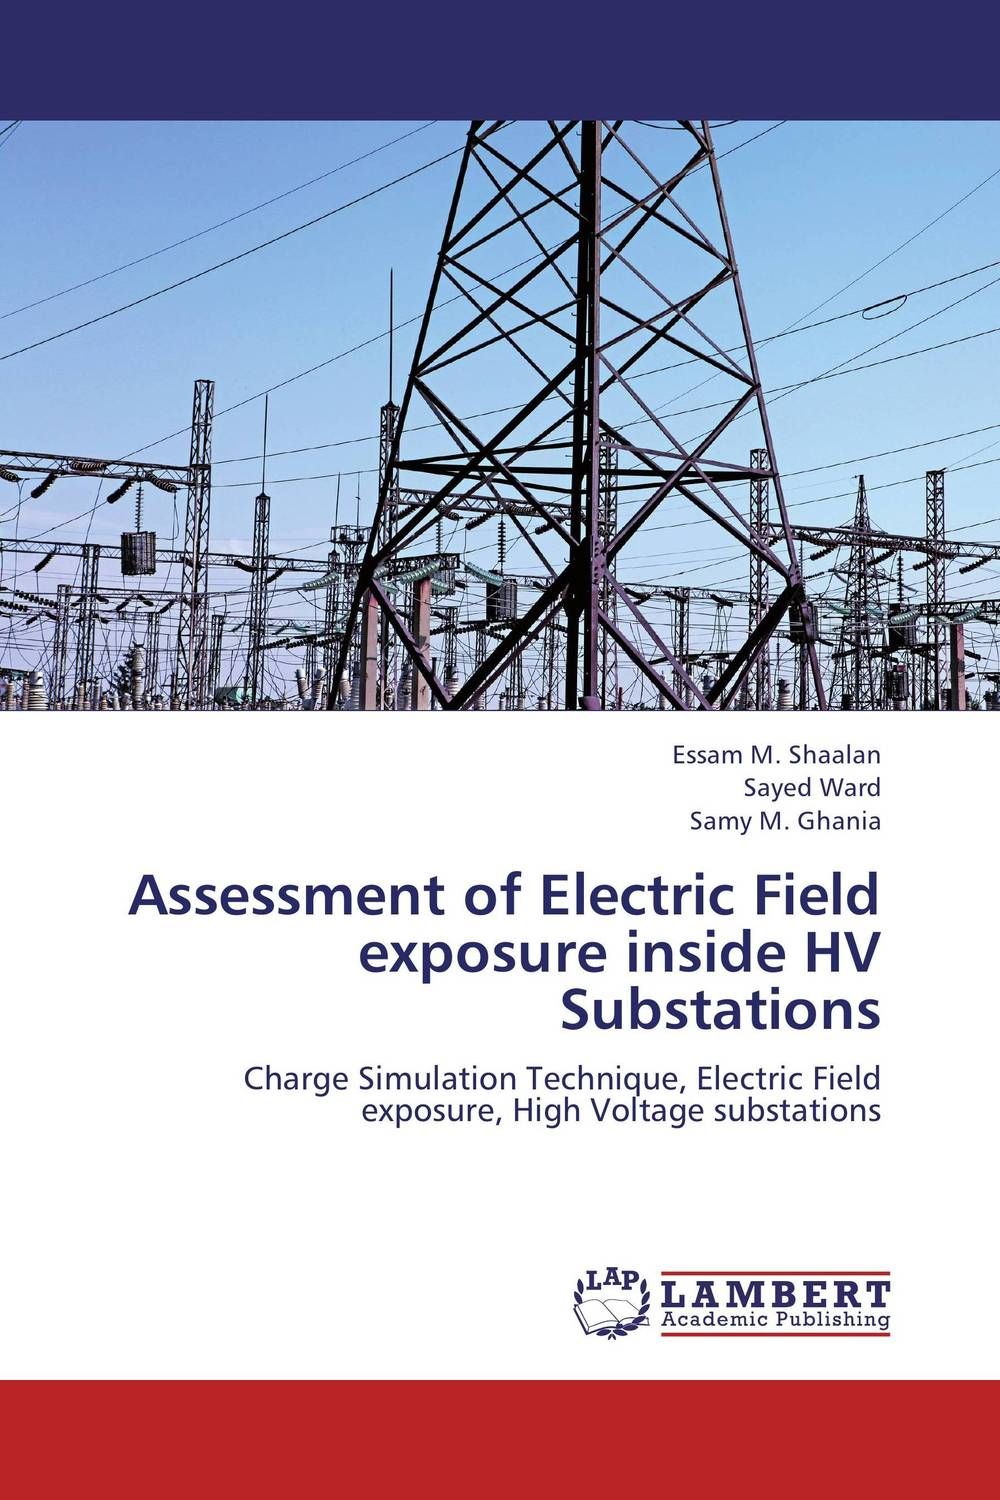 Assessment of Electric Field exposure inside HV Substations  essam m shaalan sayed ward and samy m ghania assessment of electric field exposure inside hv substations